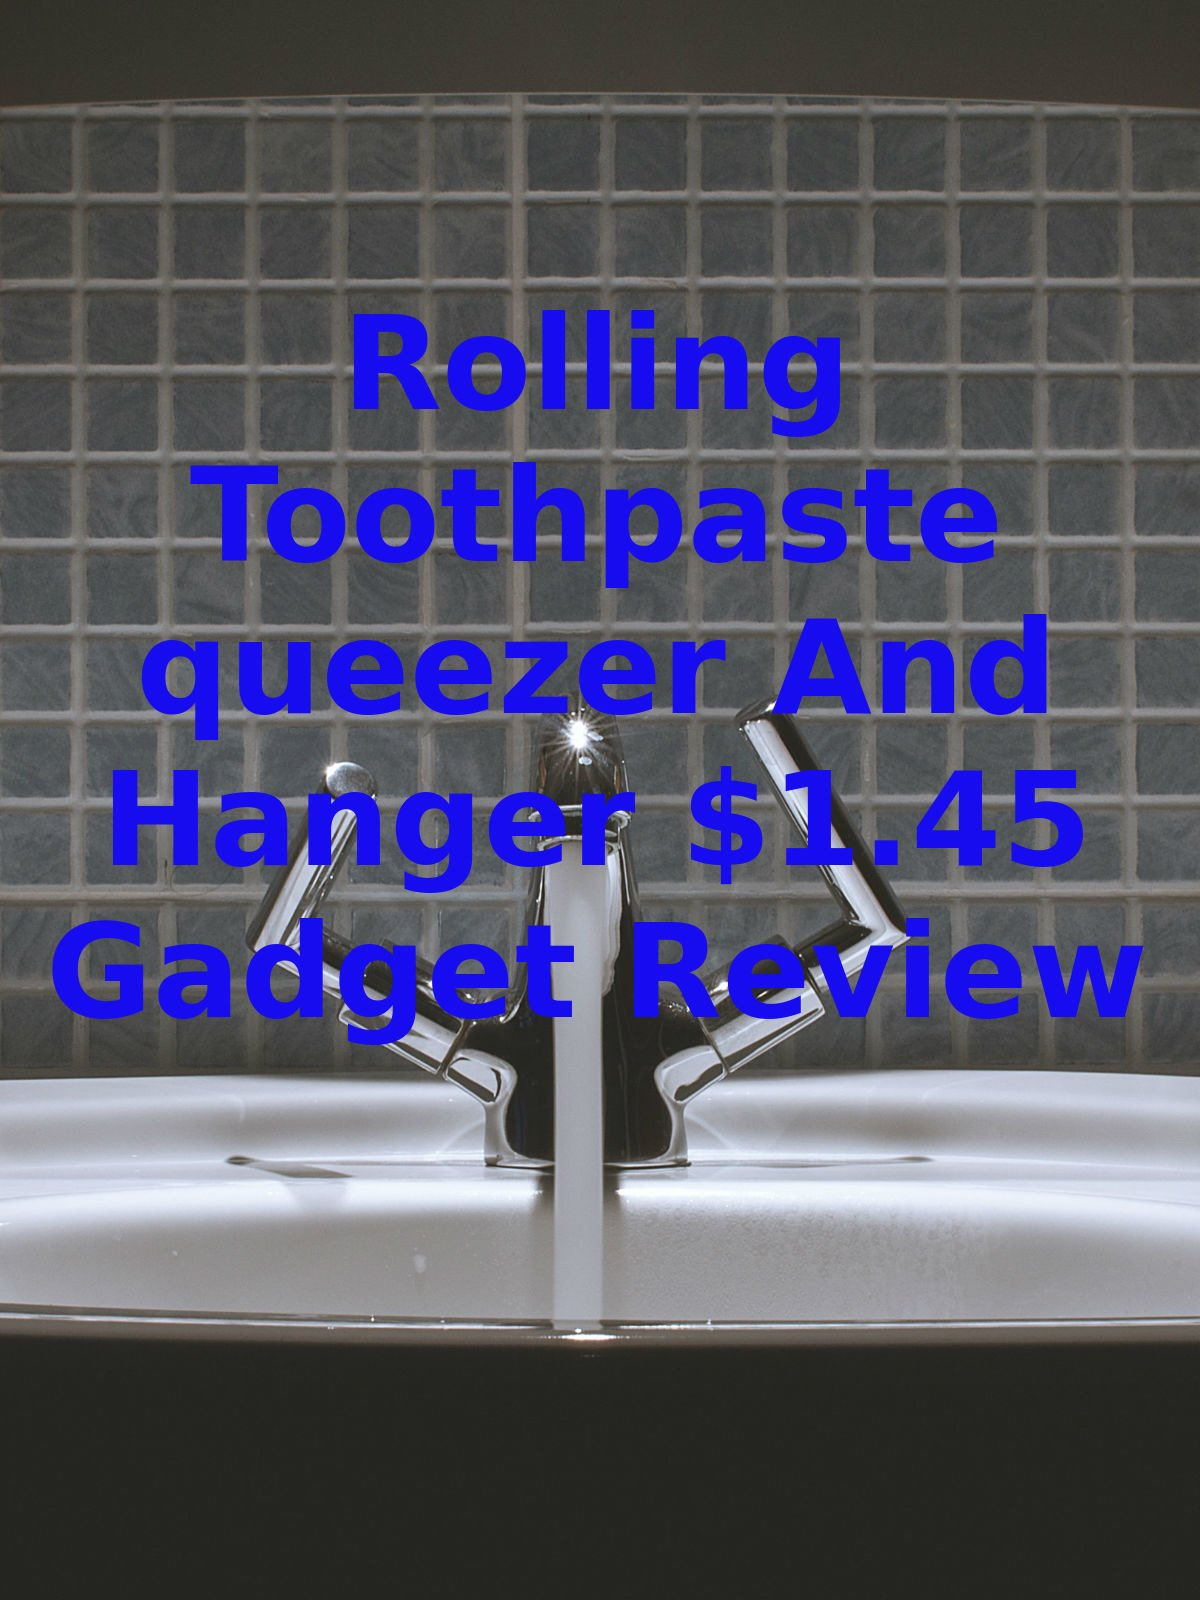 Review: Rolling Toothpaste Squeezer And Hanger $1.45 Gadget Review